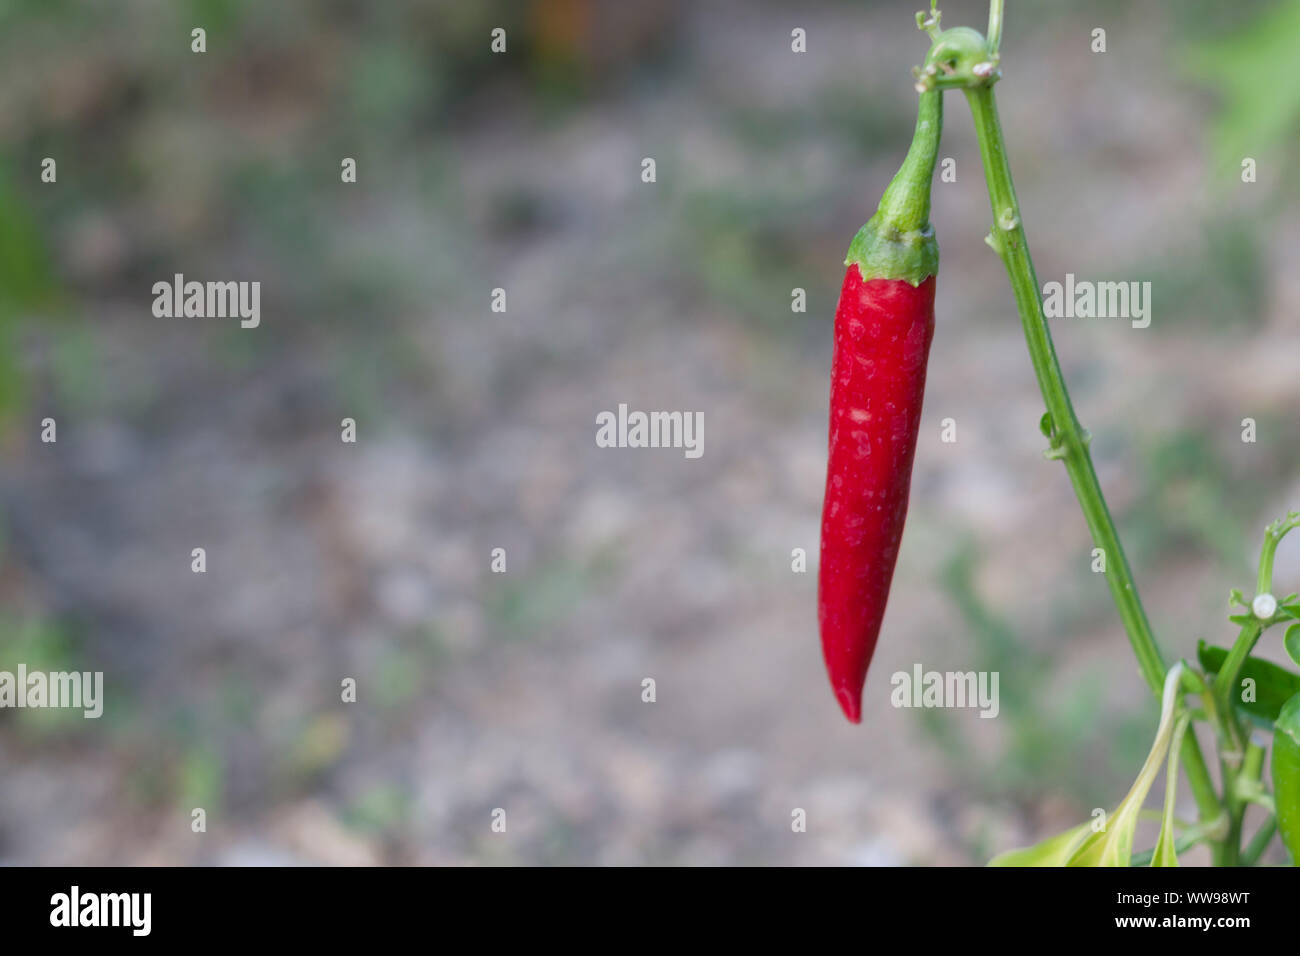 hot red pepper hangs on a stem Stock Photo